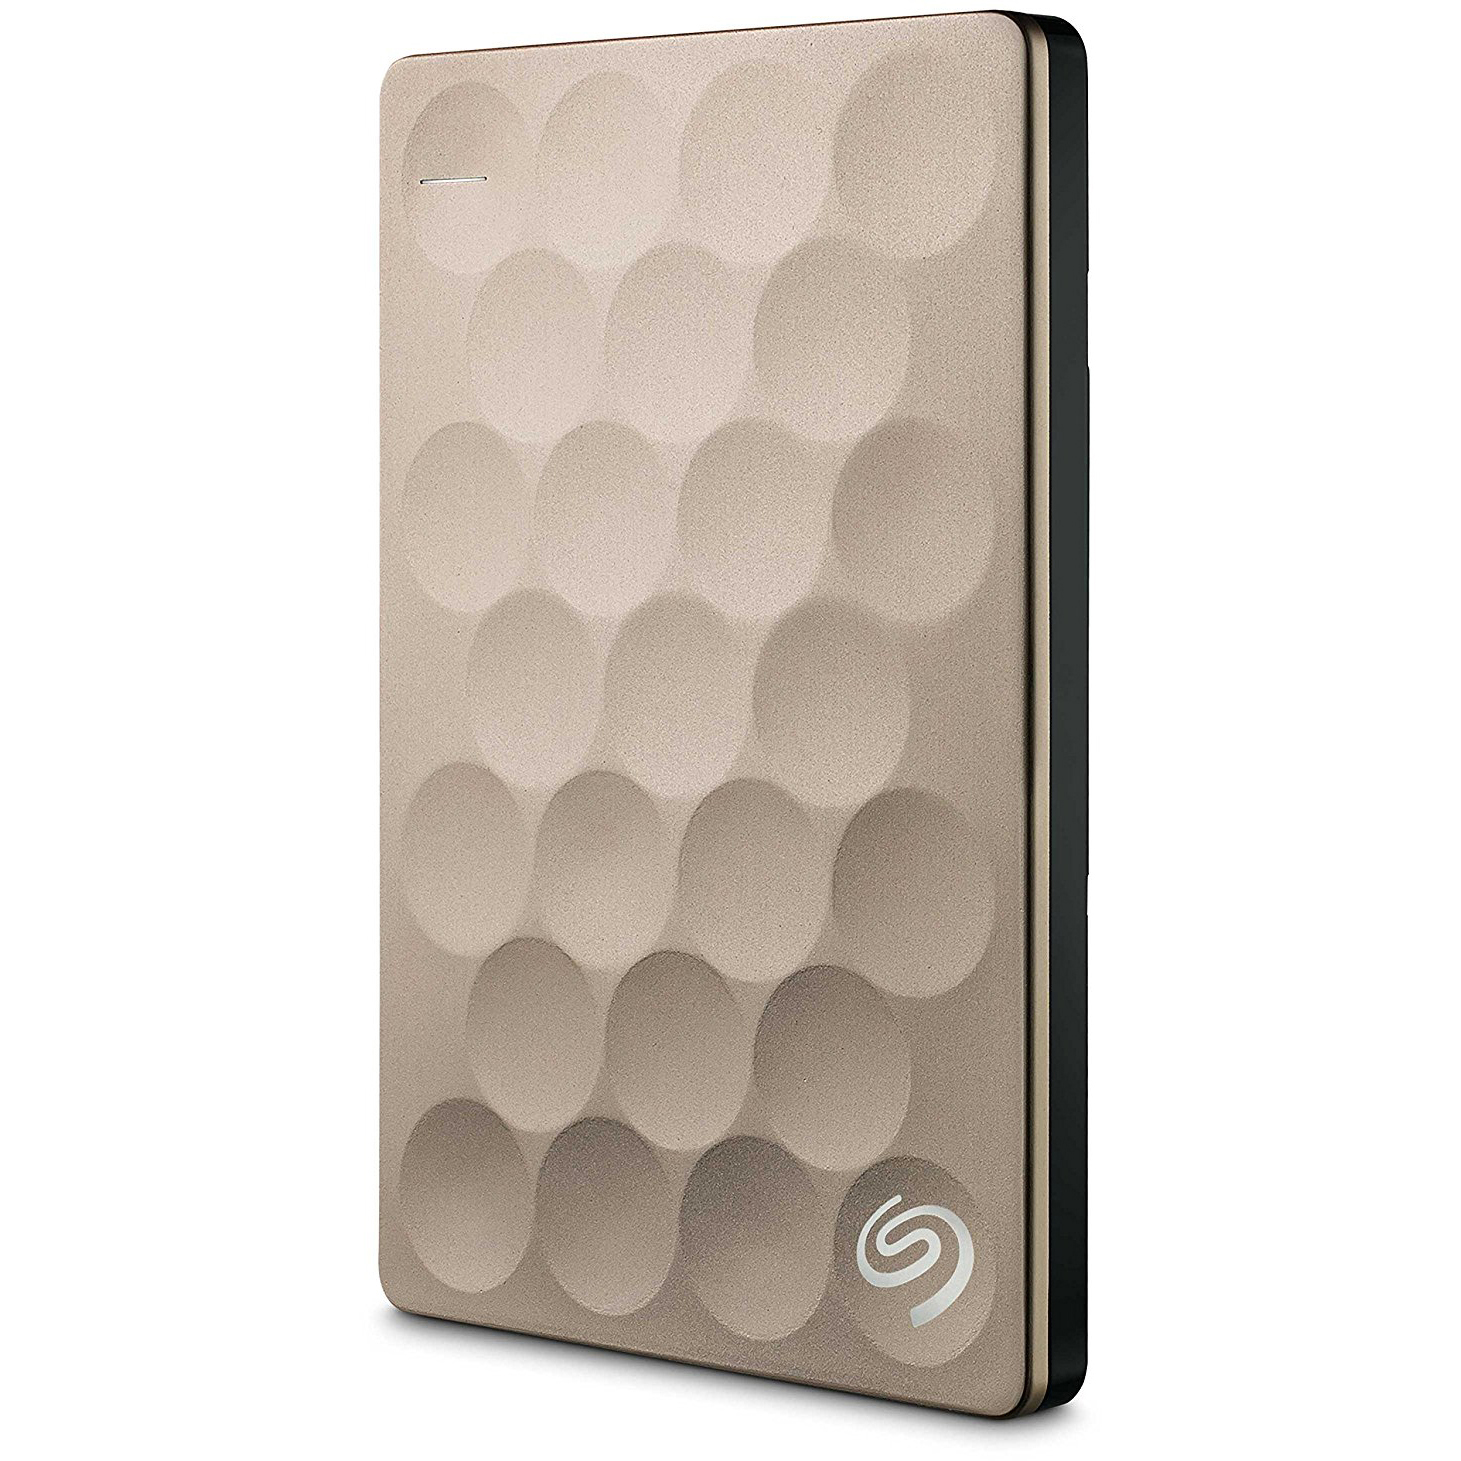 Original Seagate Back Up Plus Ultra Slim 2TB External Hard Drive (STEH2000201)